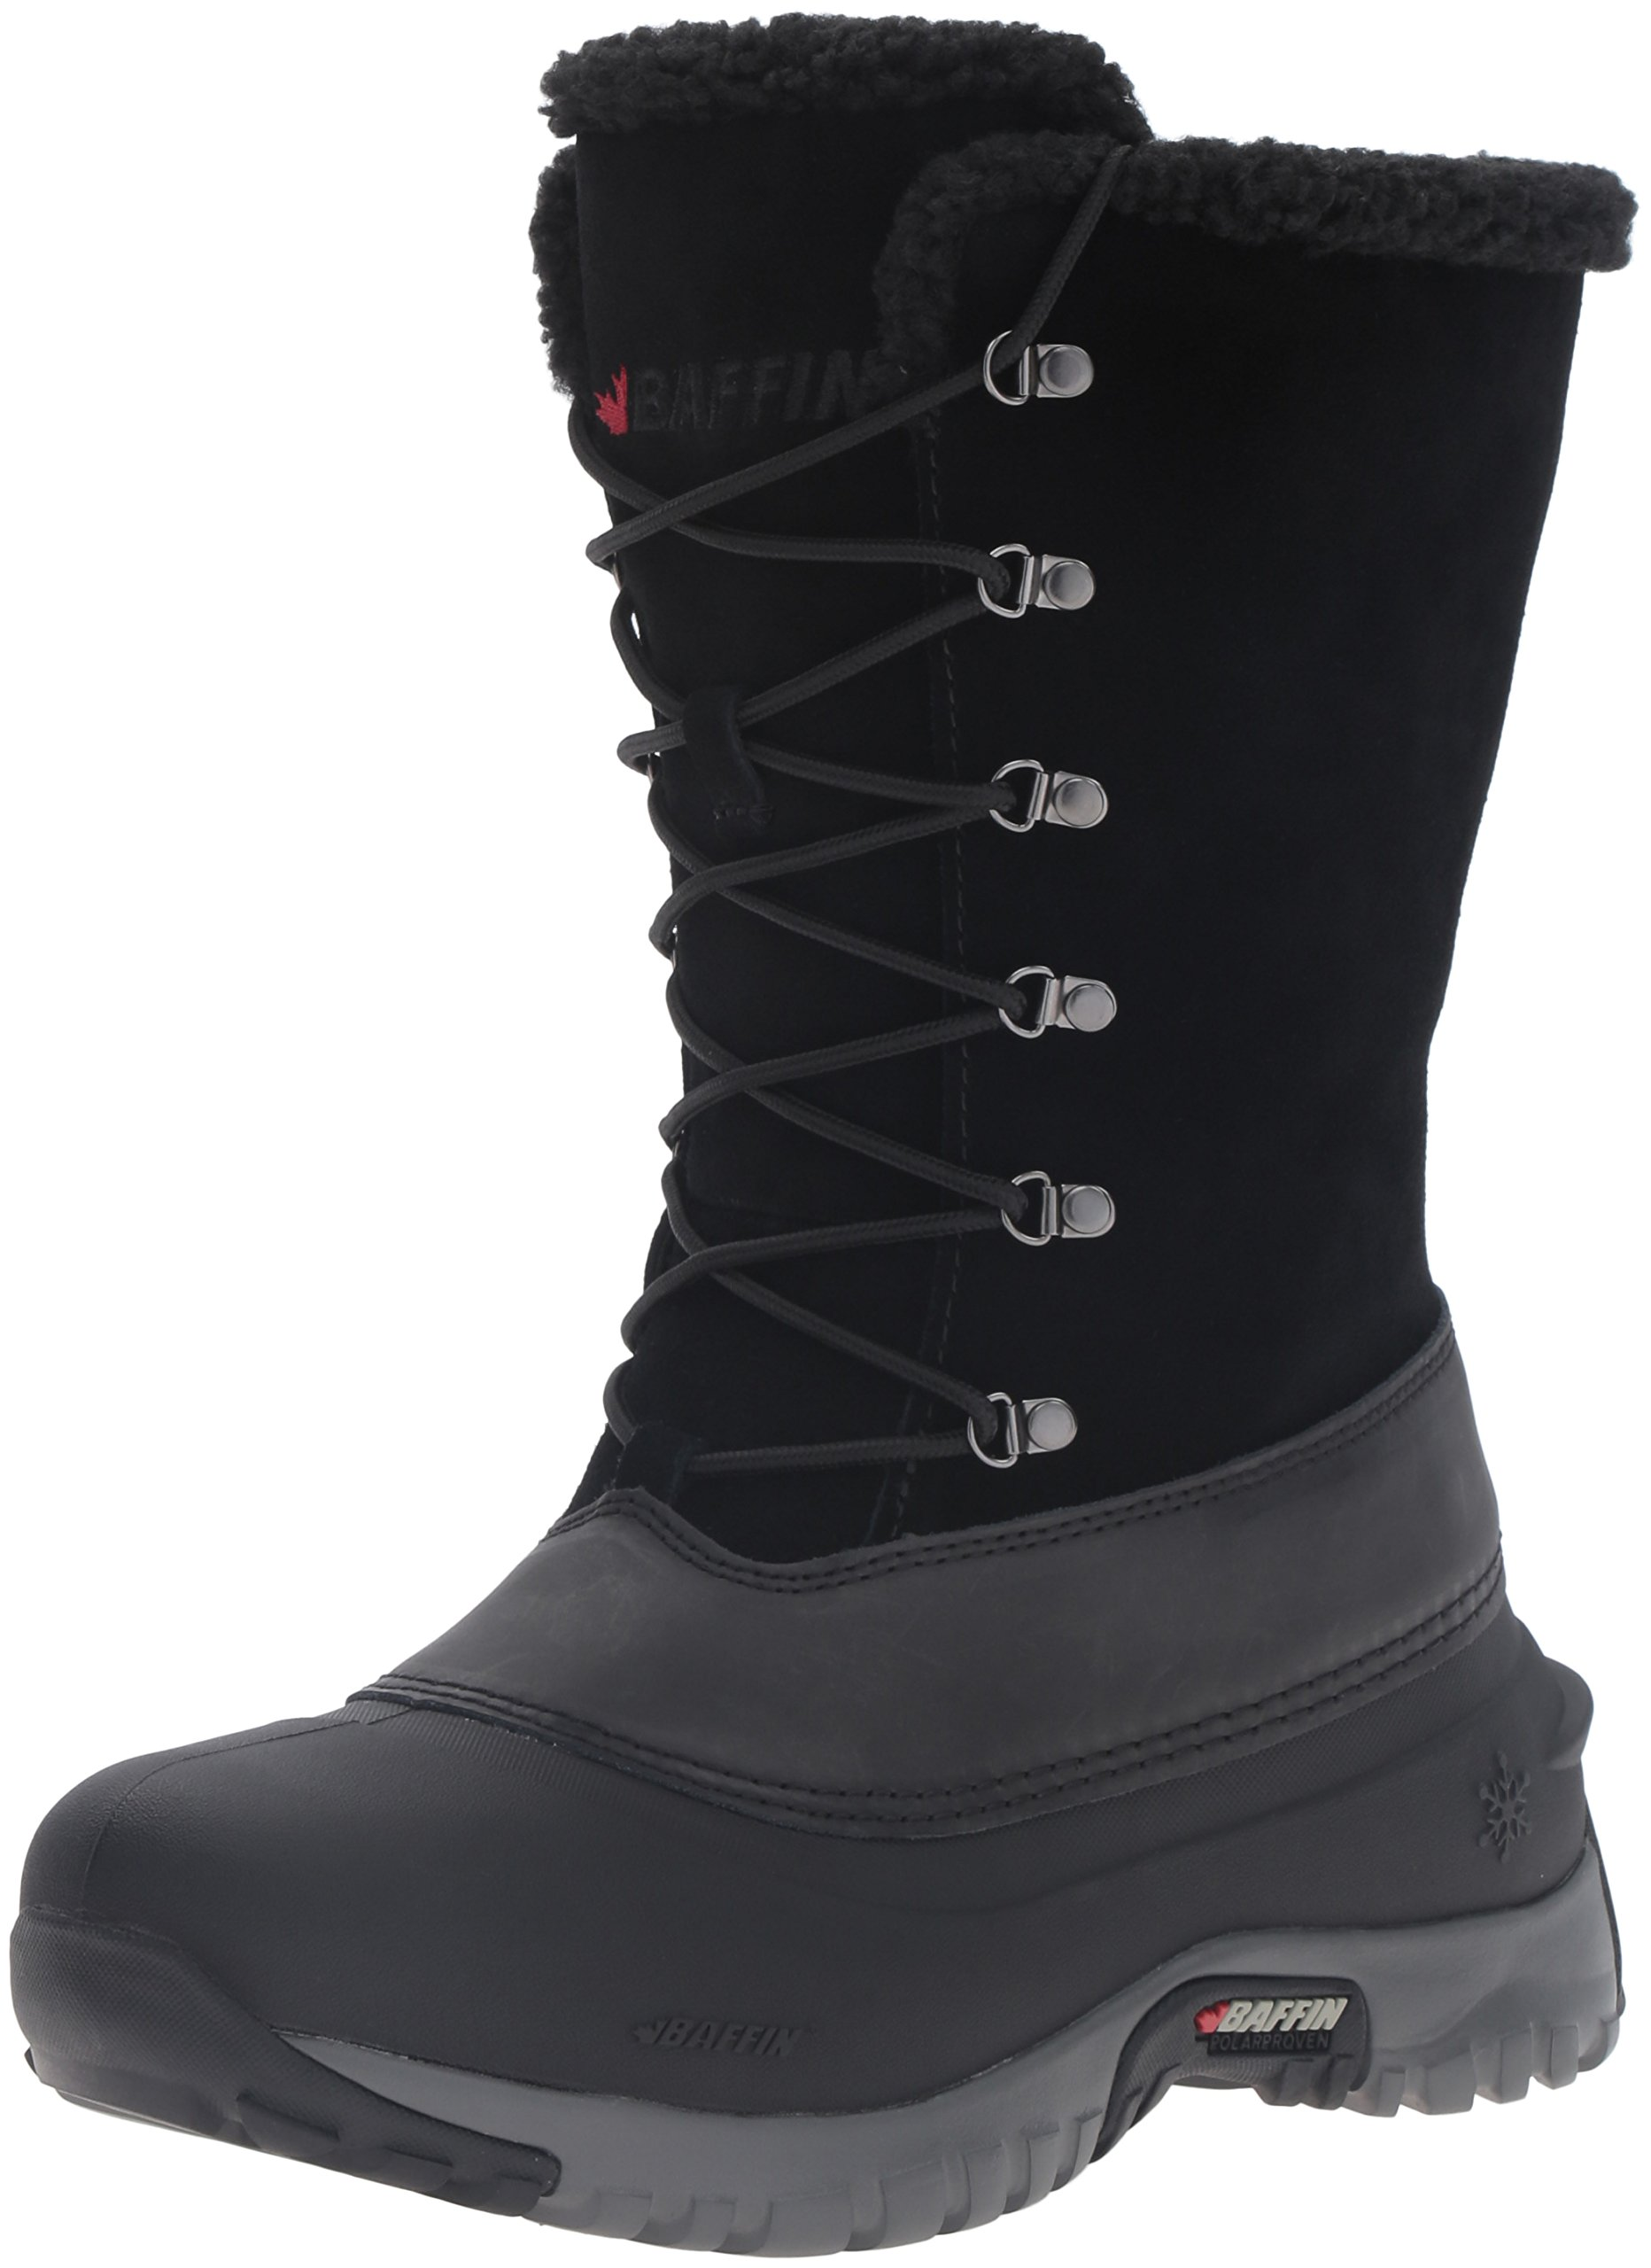 Baffin Women's Hannah Snow Boot, Black, 7 M US